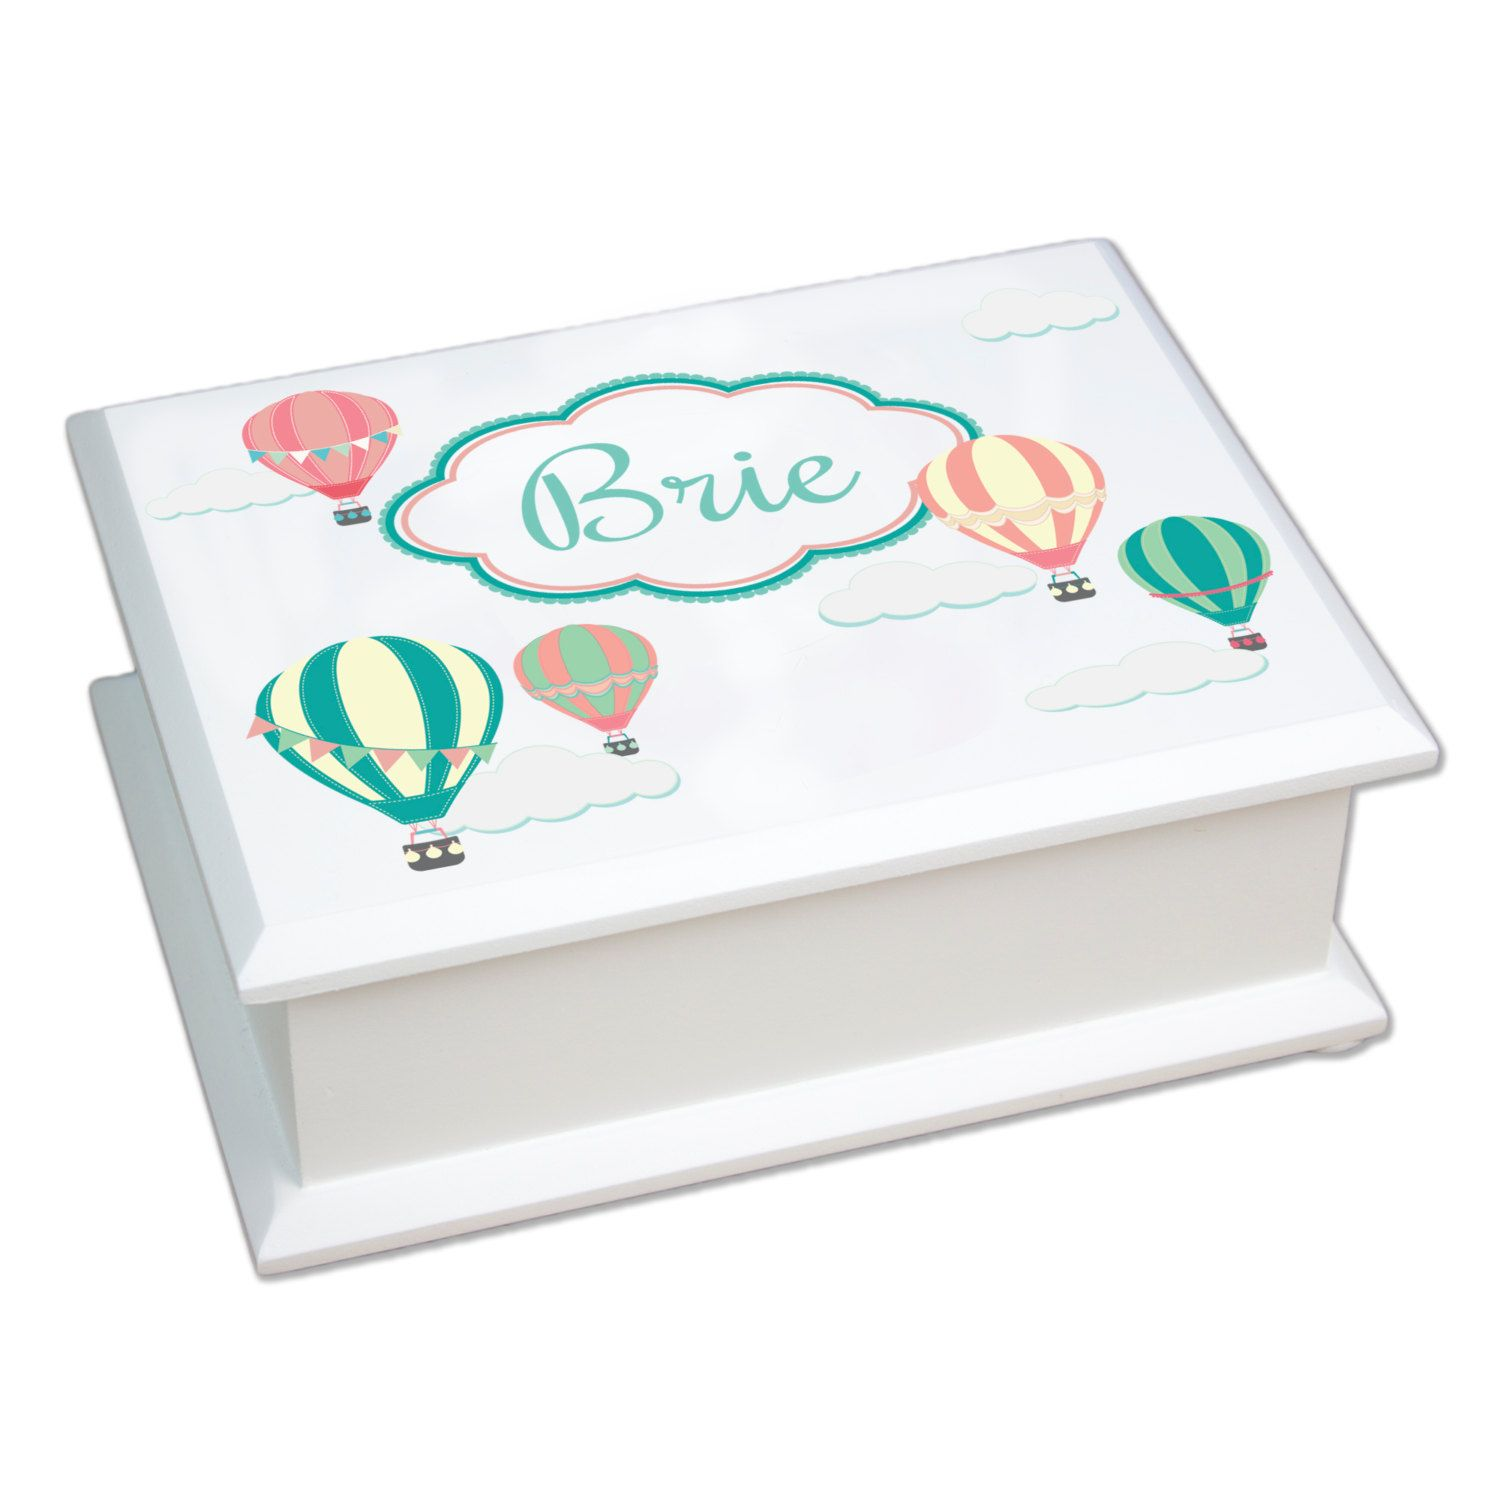 Personalized Jewelry Box Features Hot Air Balloons in soft corals